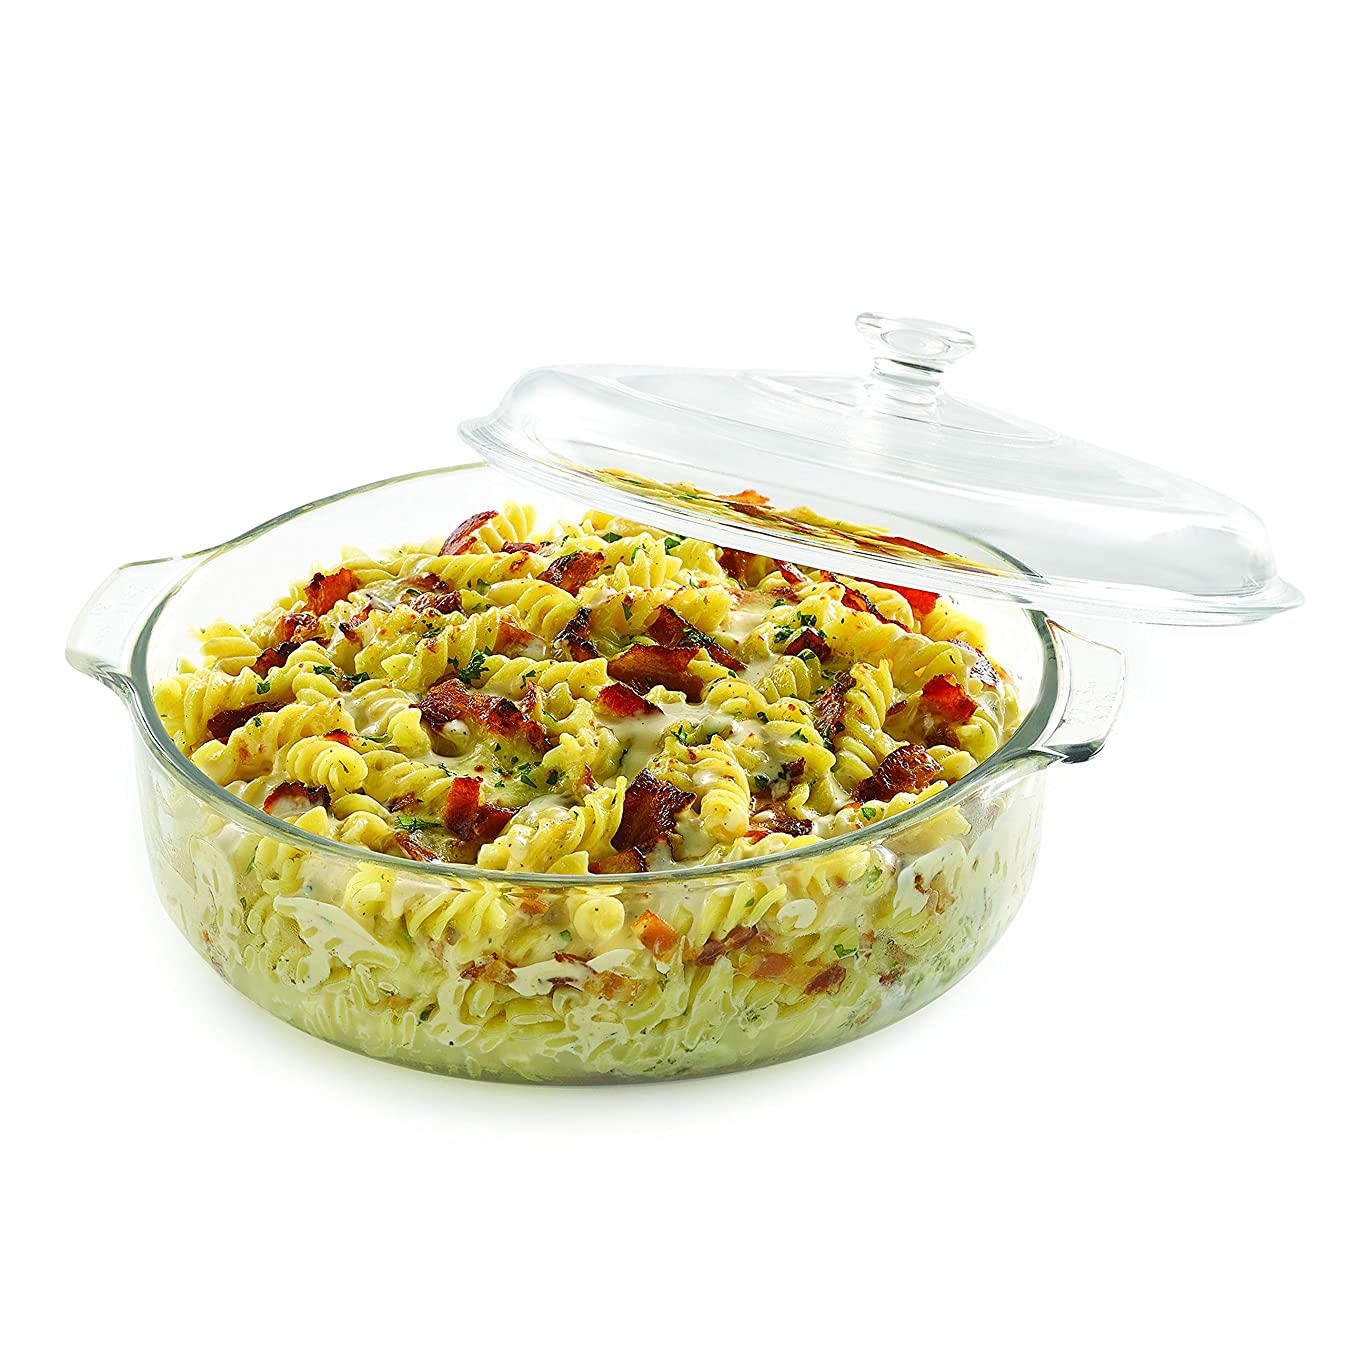 Libbey Baker's Basics Glass Casserole Dish with Cover, 3-quart